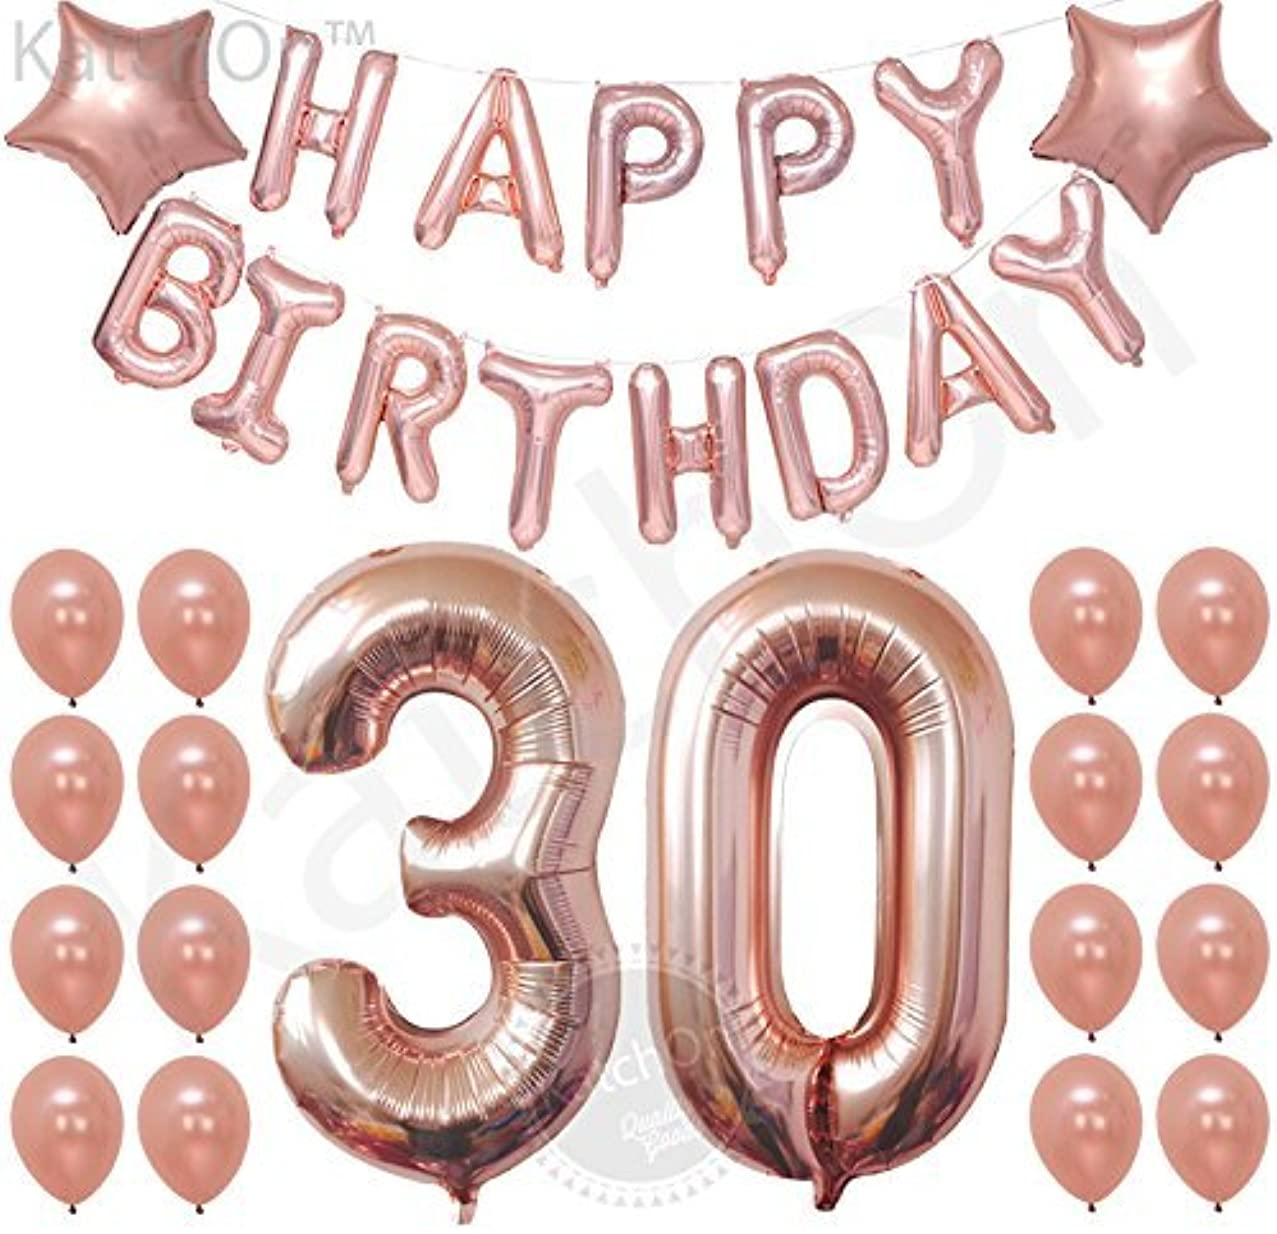 30th Birthday Decorations, Rose Gold – 30 and Happy Birthday Rose Gold Balloons Banner Great for 30th Birthday Party Supplies and Rose Gold Party Decorations, Latex and Star Mylar Rose Gold Balloons